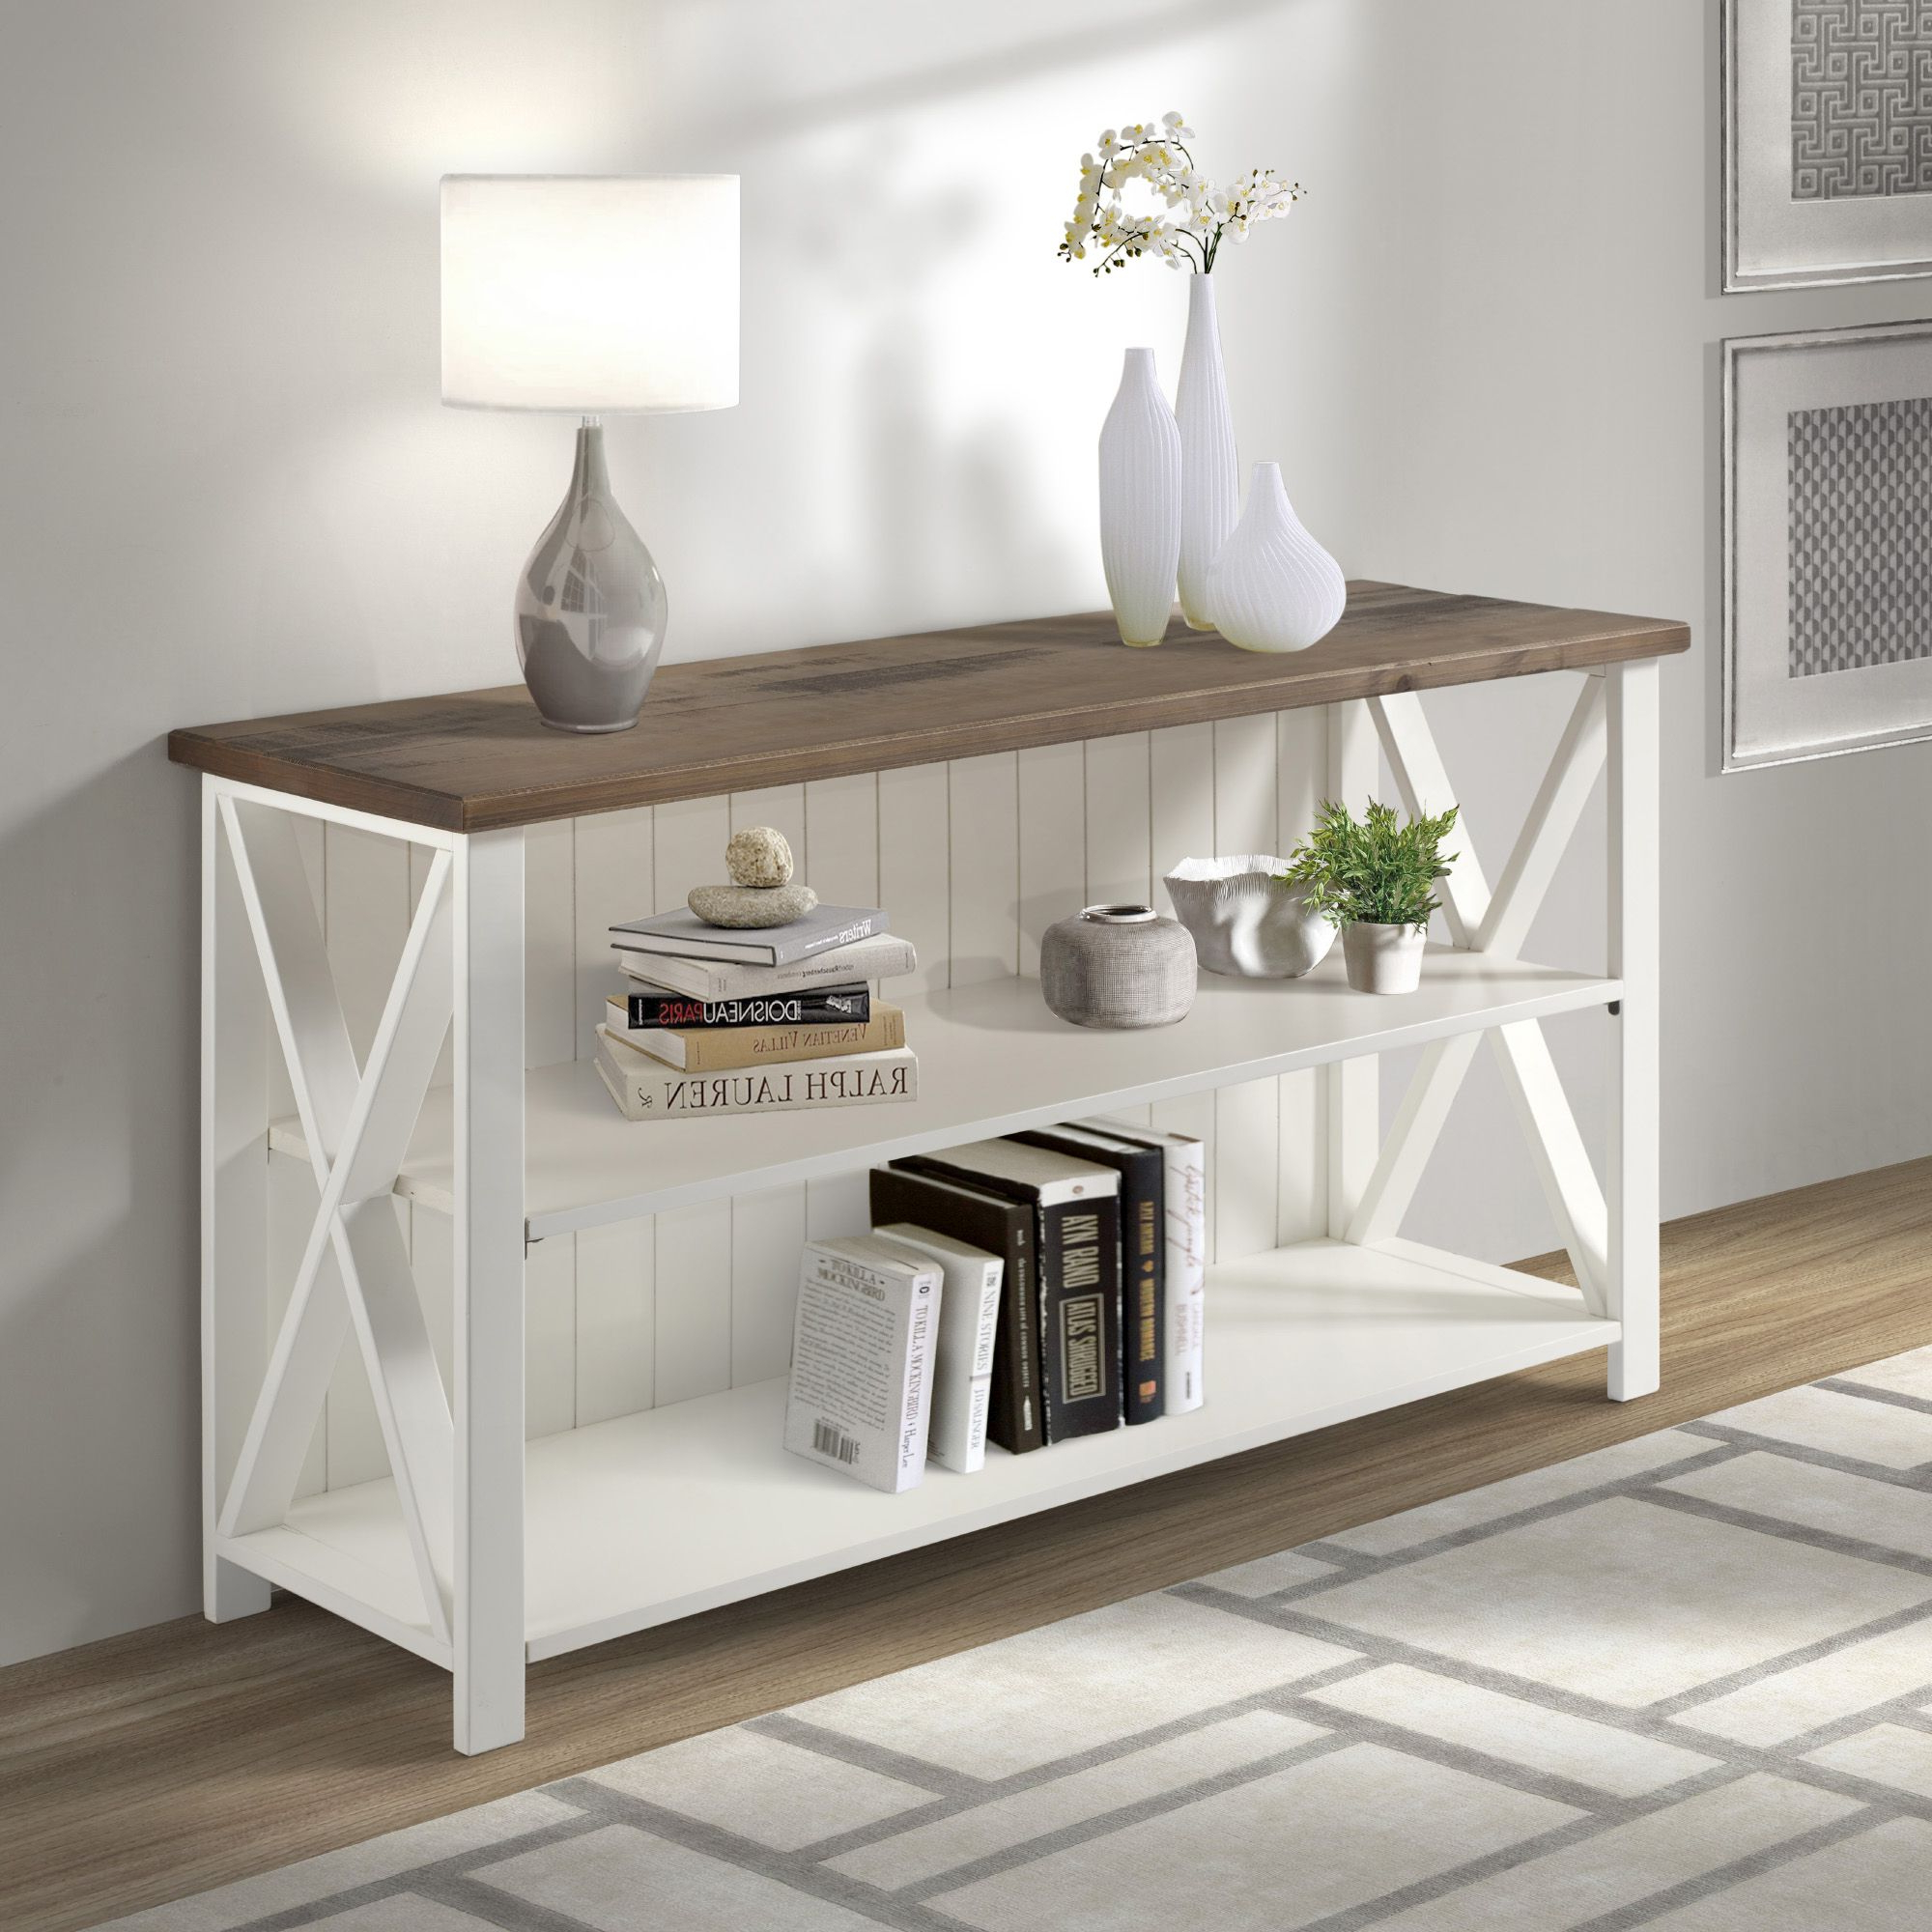 Woven Paths Solid Wood Storage Console Table, White Pertaining To Woven Paths Barn Door Tv Stands In Multiple Finishes (View 8 of 20)